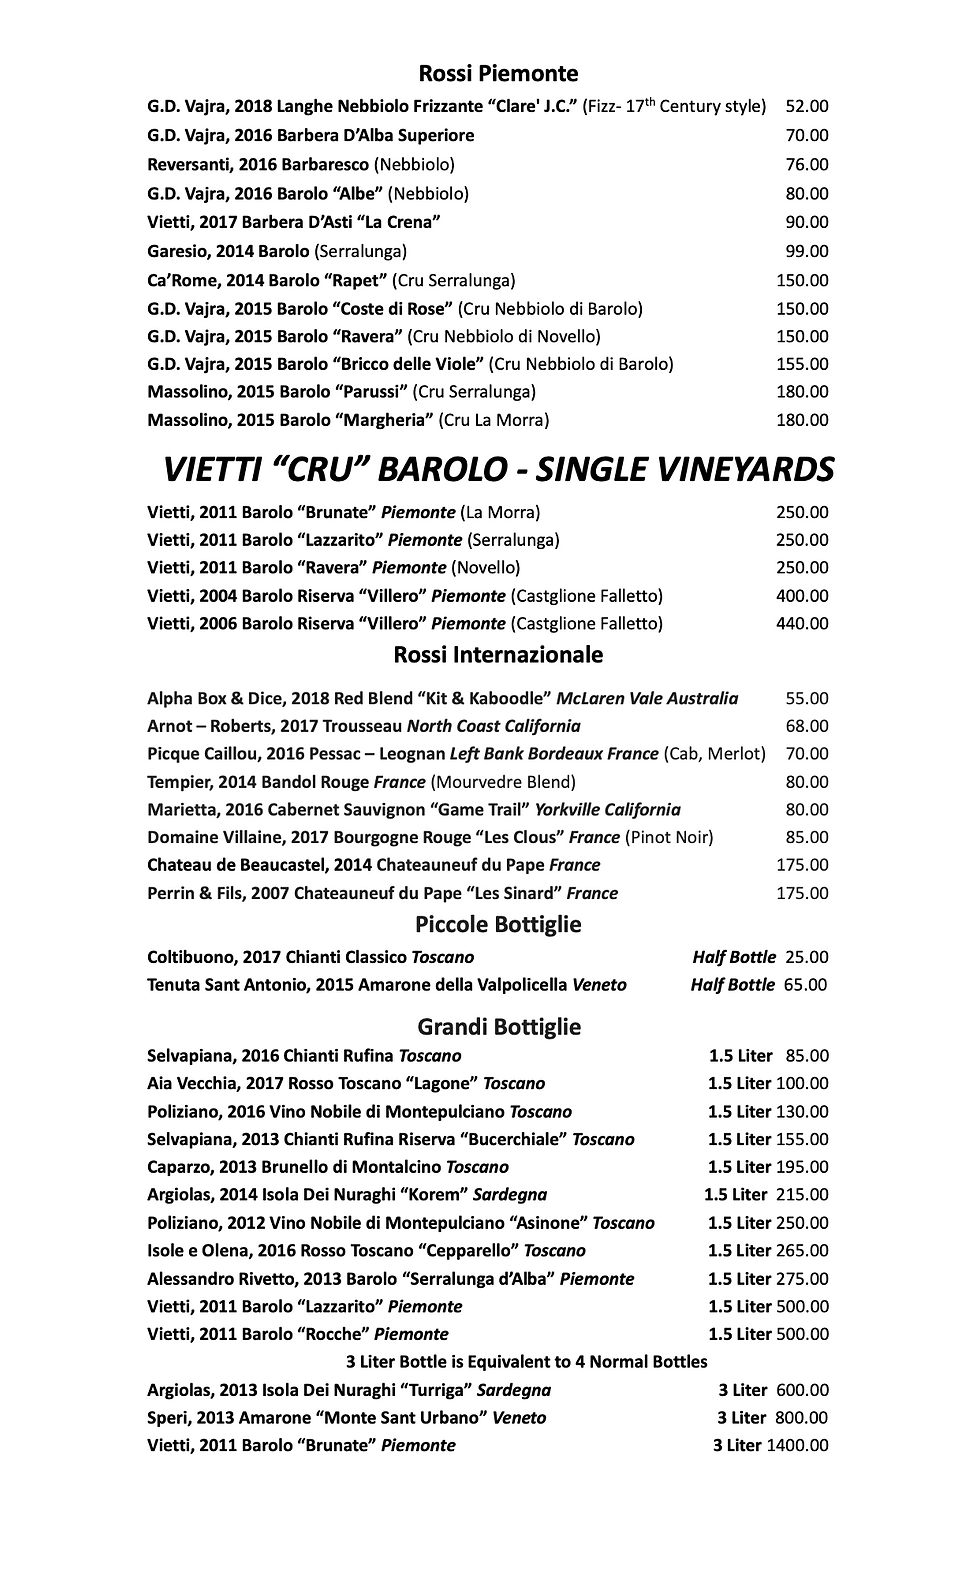 Wine List 9-24-2020 (dragged) 2.png